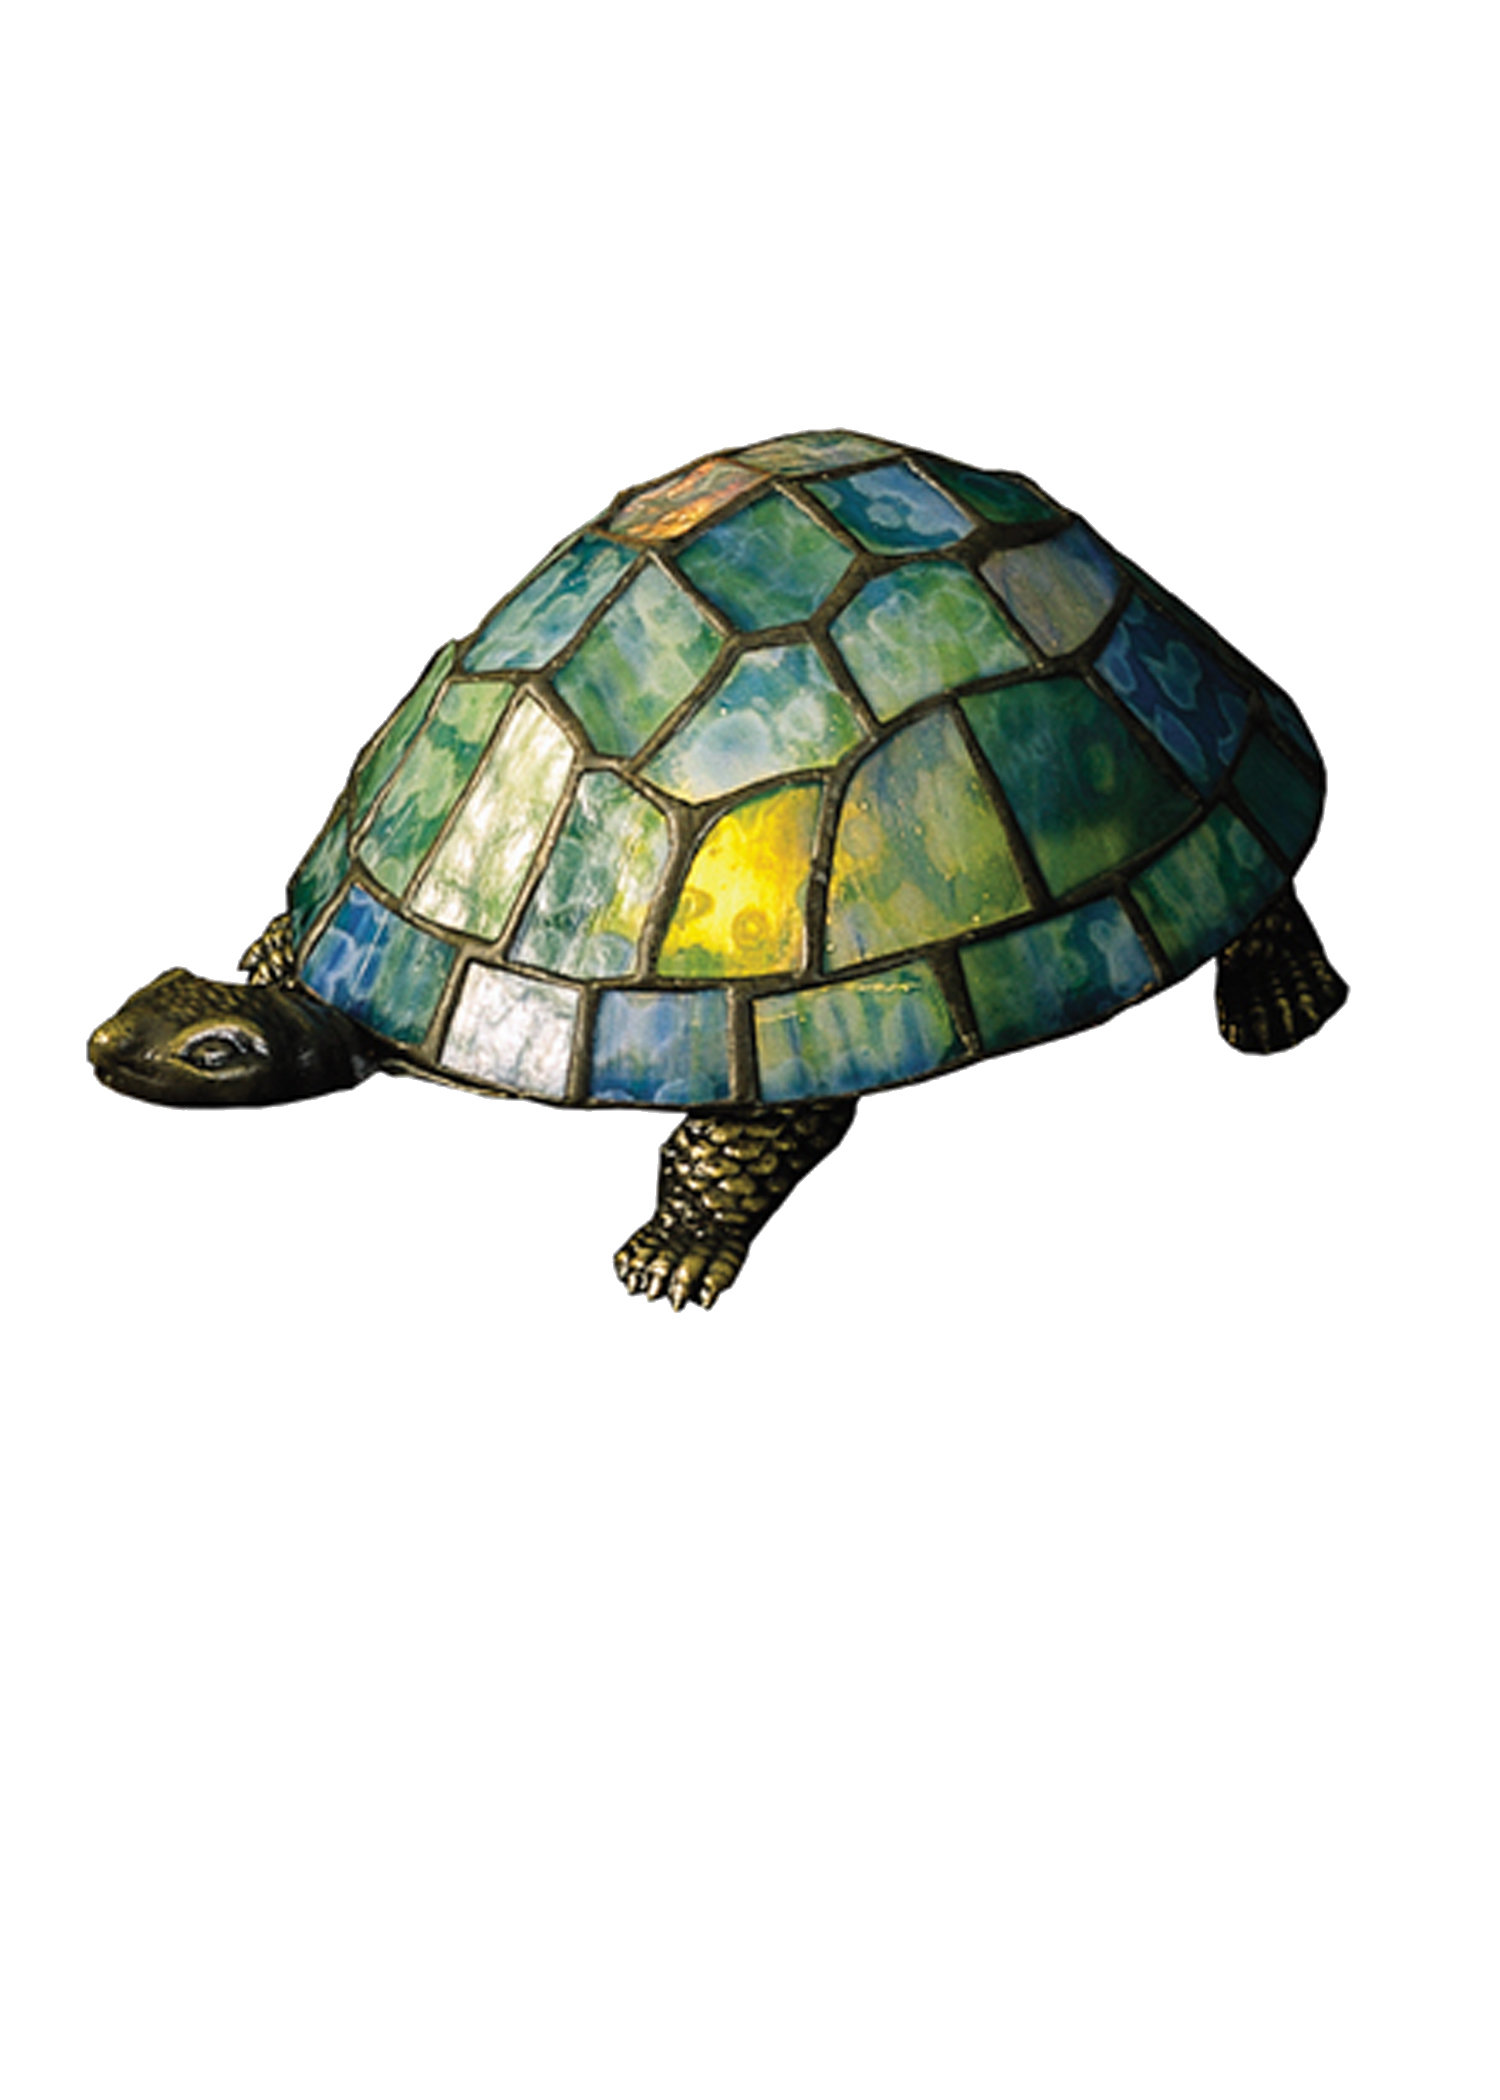 meyda tiffany turtle glass accent table lamp rattan side outdoor coffee and set round wood pedestal end console teal cabinet annie sloan chalk paint ideas tabletop decorative